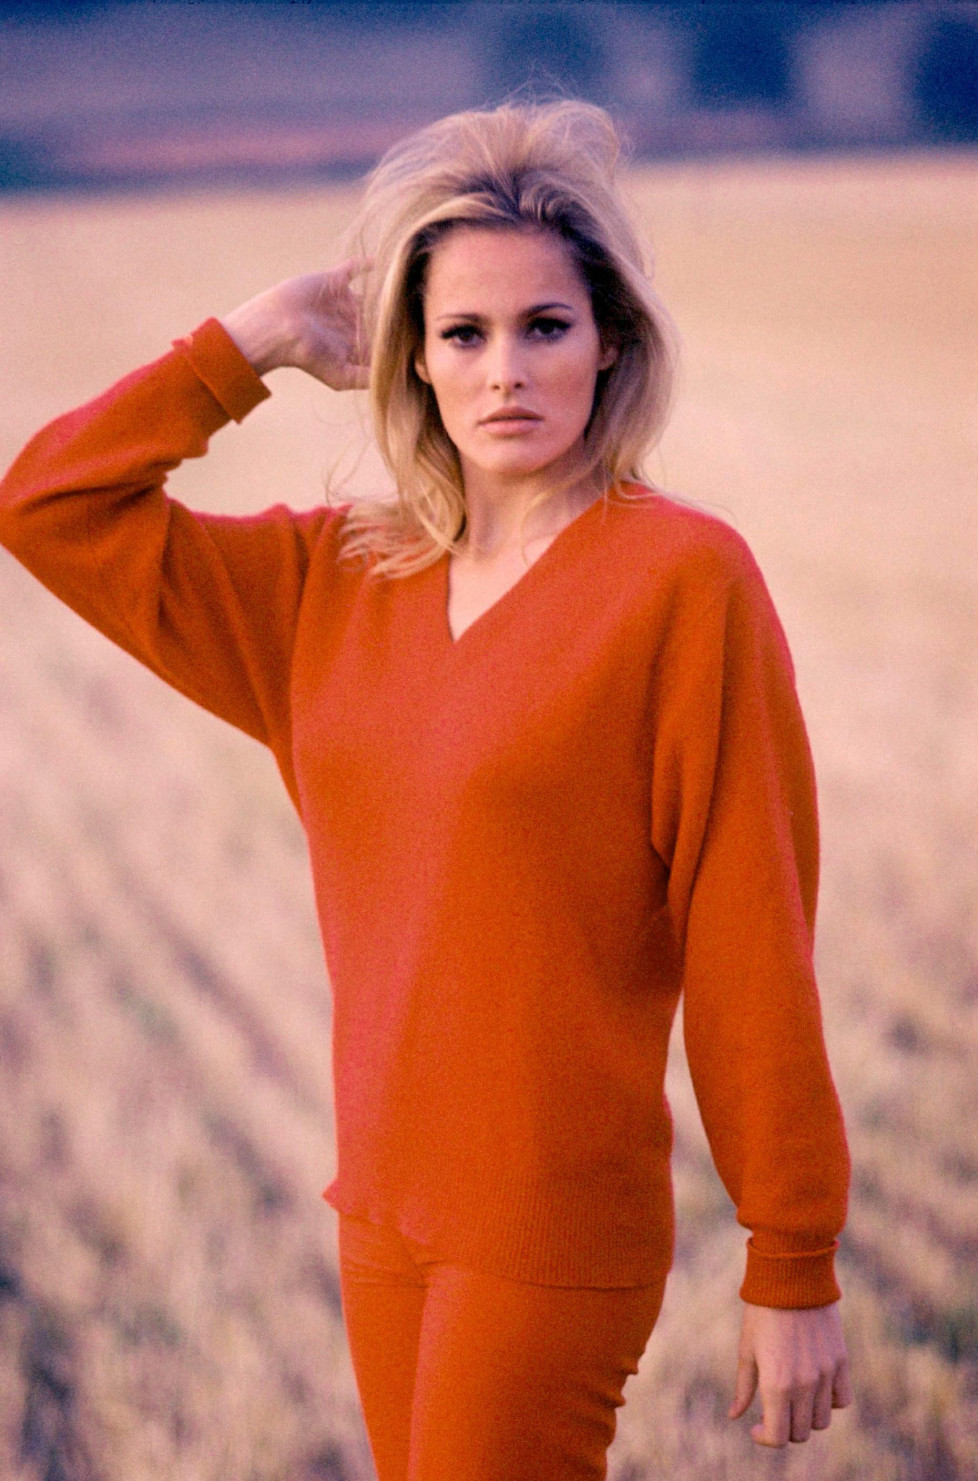 Mandatory Credit: Photo by Rex Features ( 9906A ) URSULA ANDRESS VARIOUS (FOTO:DUKAS/REX)